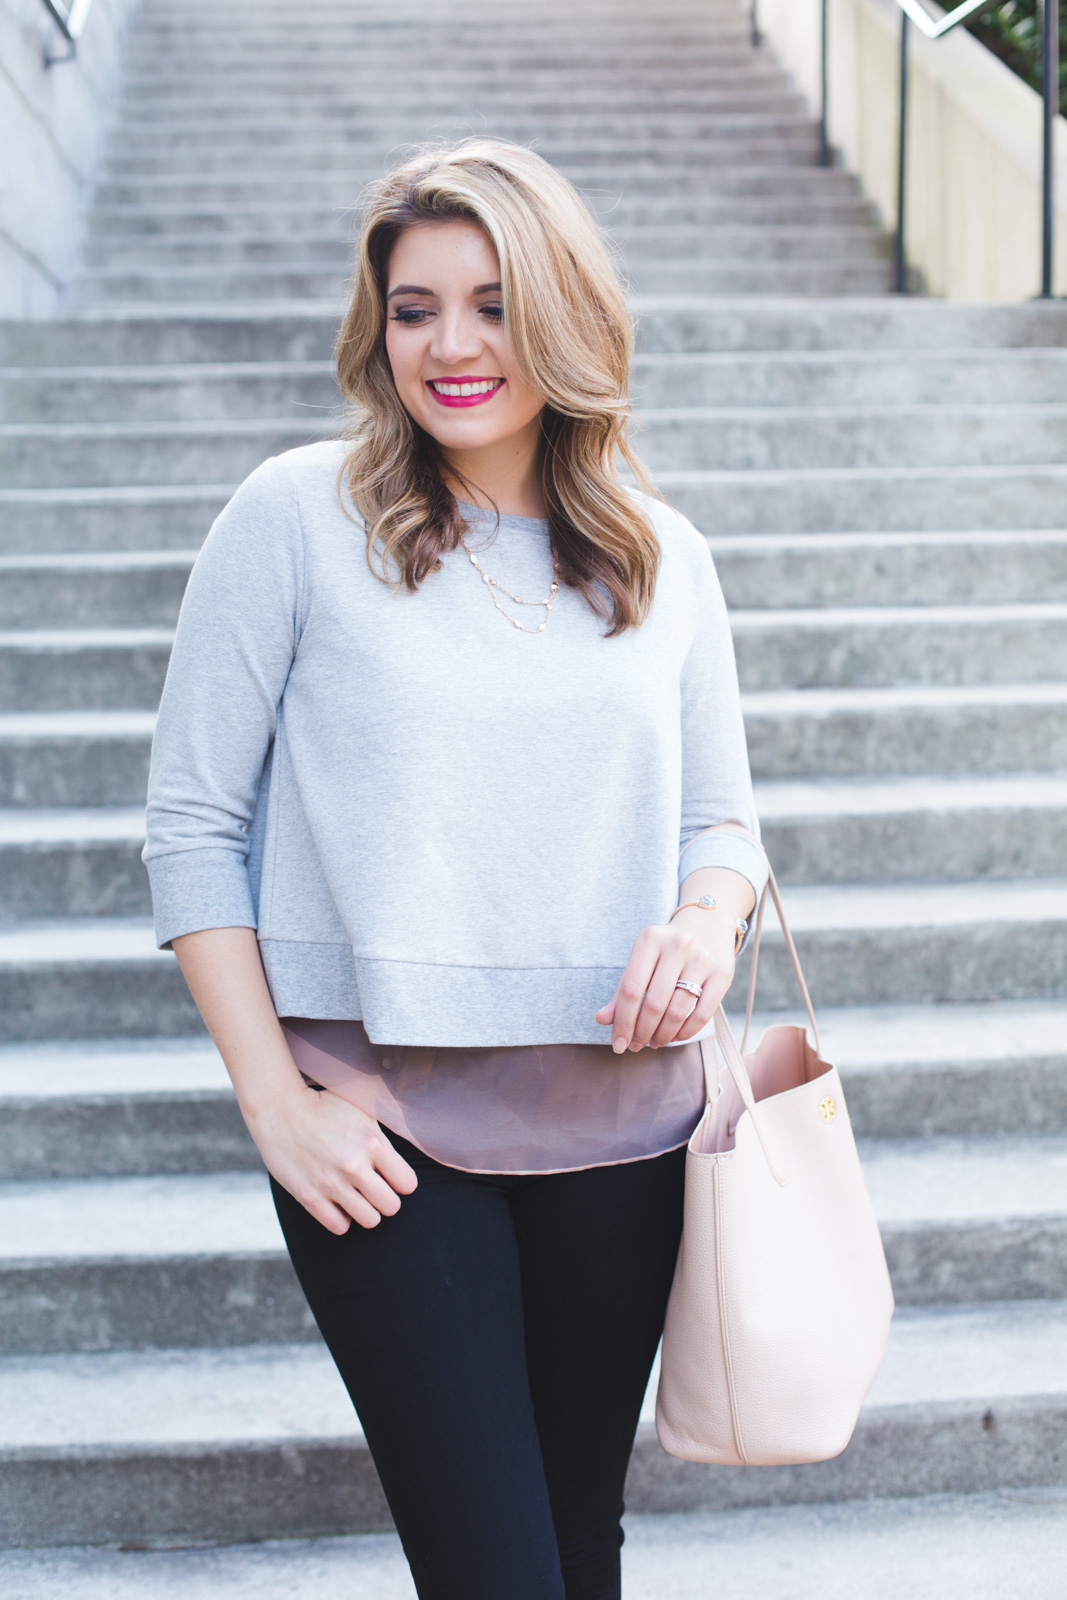 spring casual outfit - bow back sweatshirt. Click through for more casual Spring outfits or to shop this look! www.bylaurenm.com